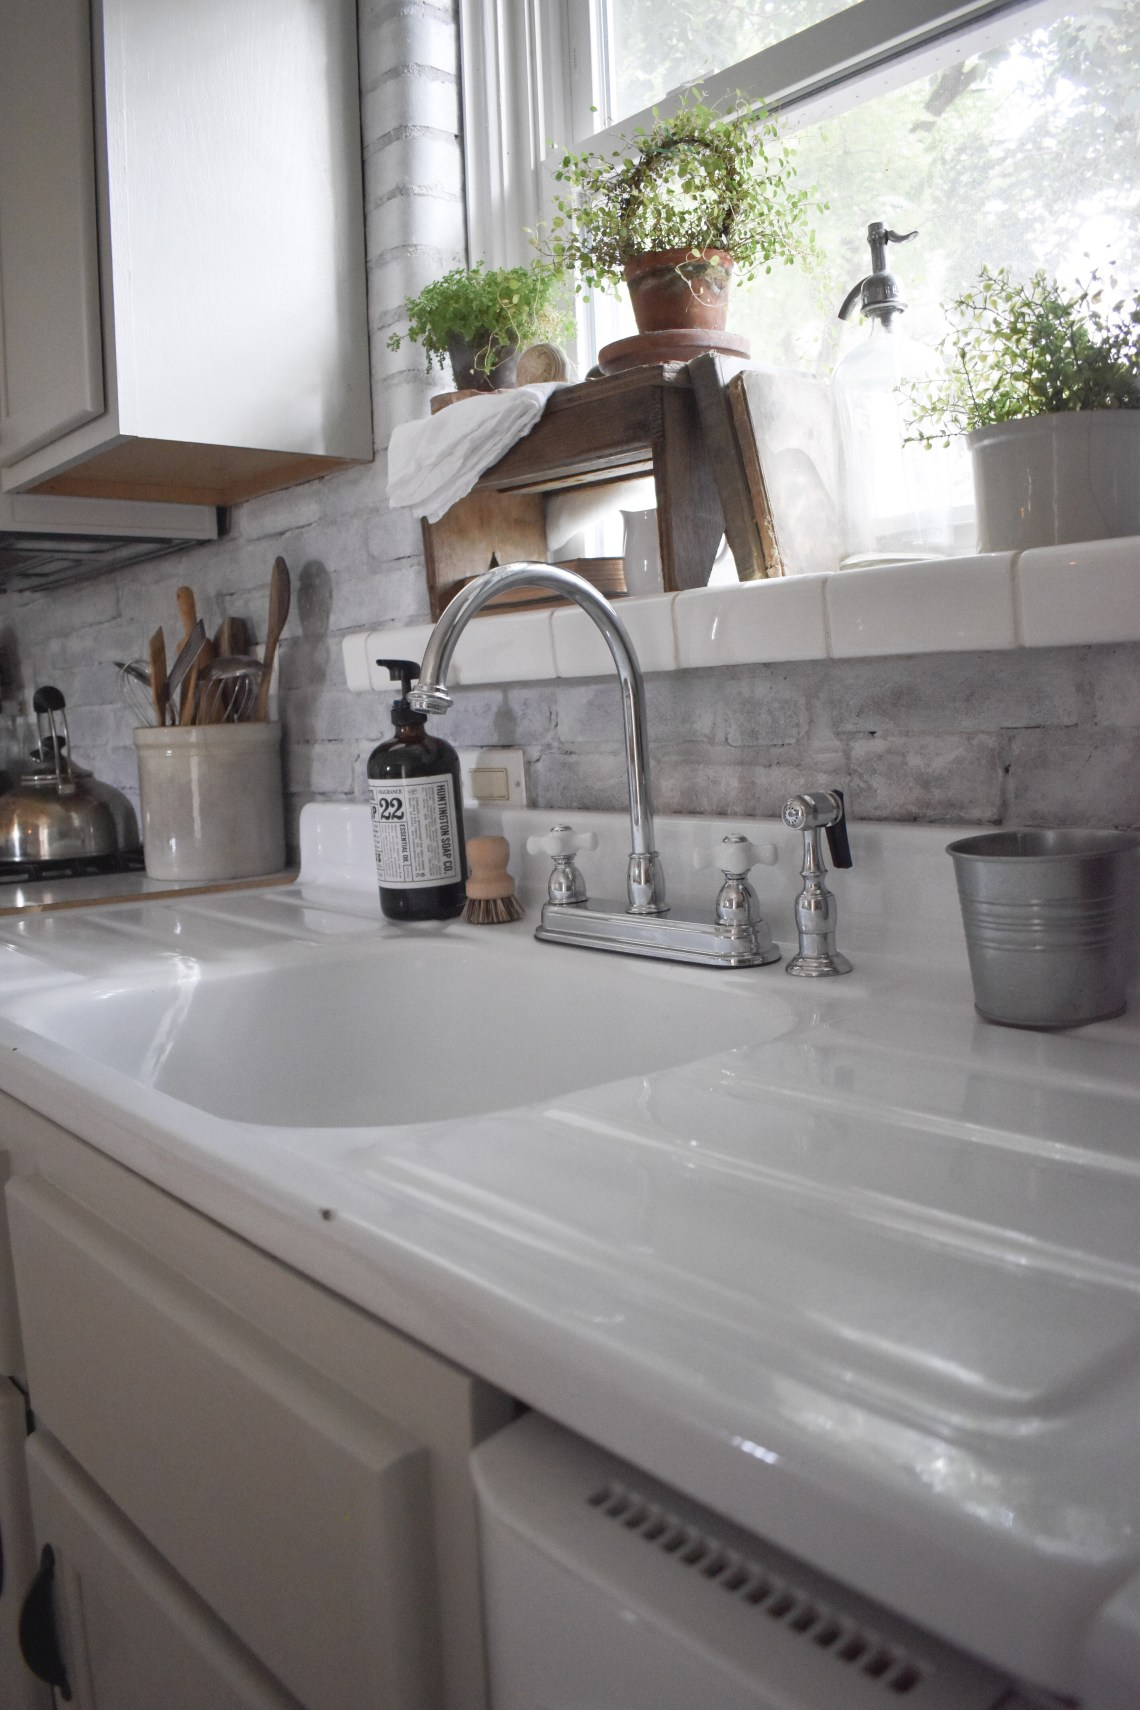 Vintage Washboard Kitchen Sink